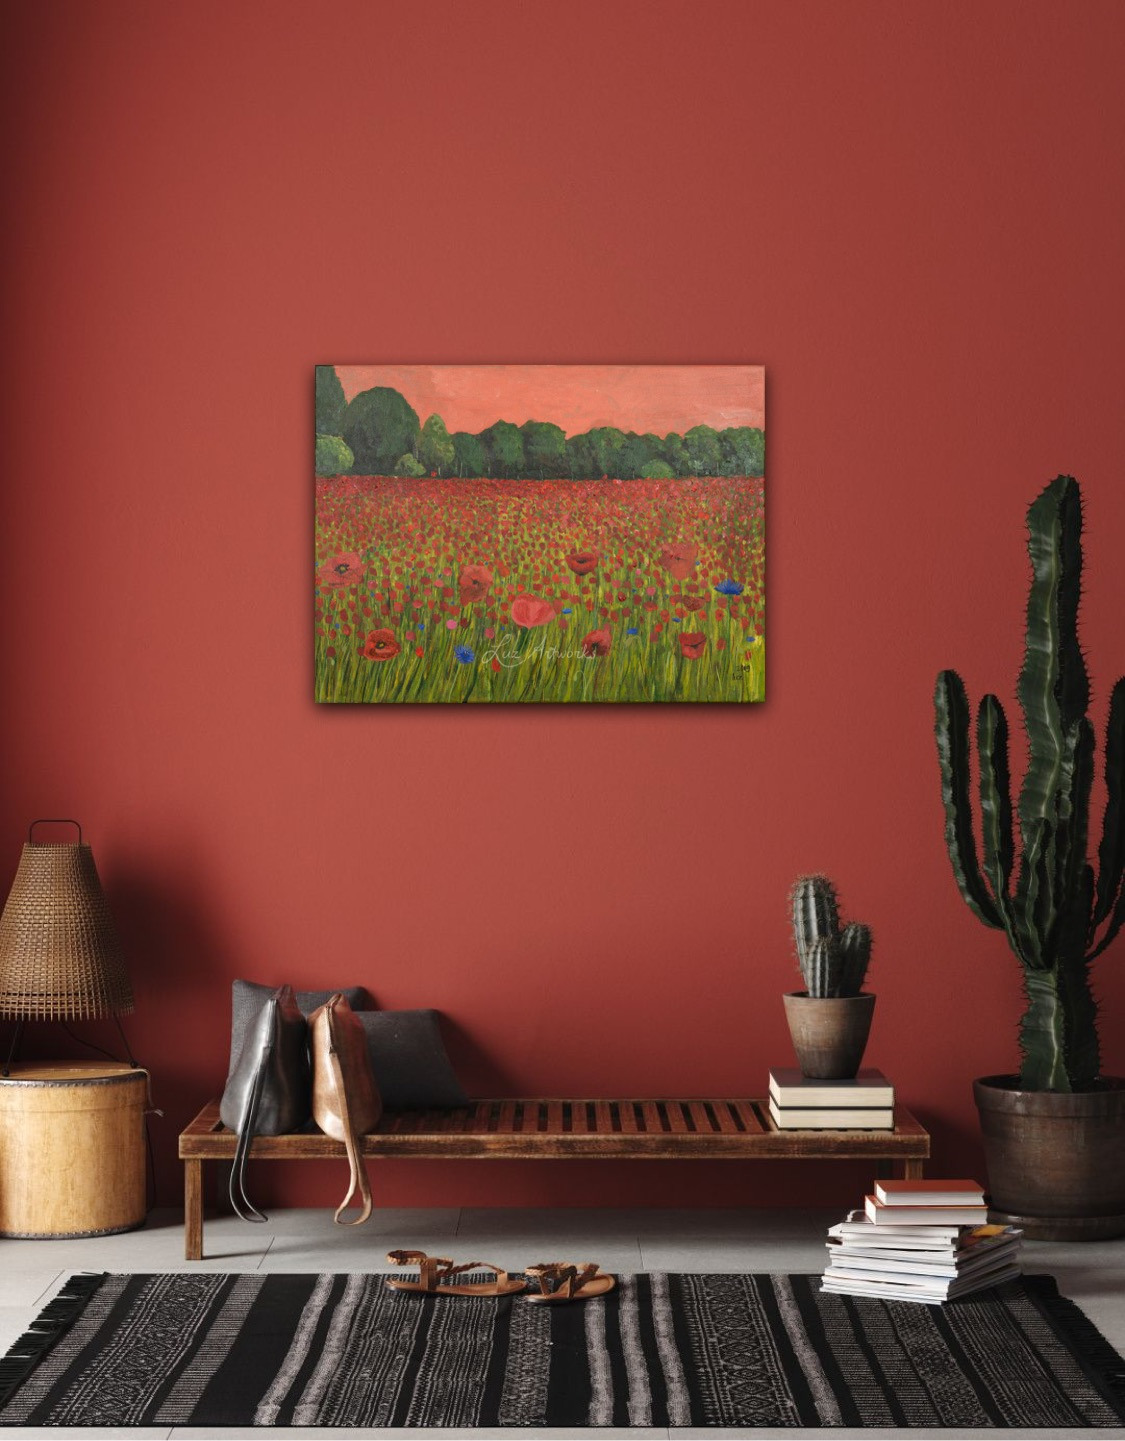 Painting Poppy Field by Marloes Bloedjes Luz Artworks - on the wall